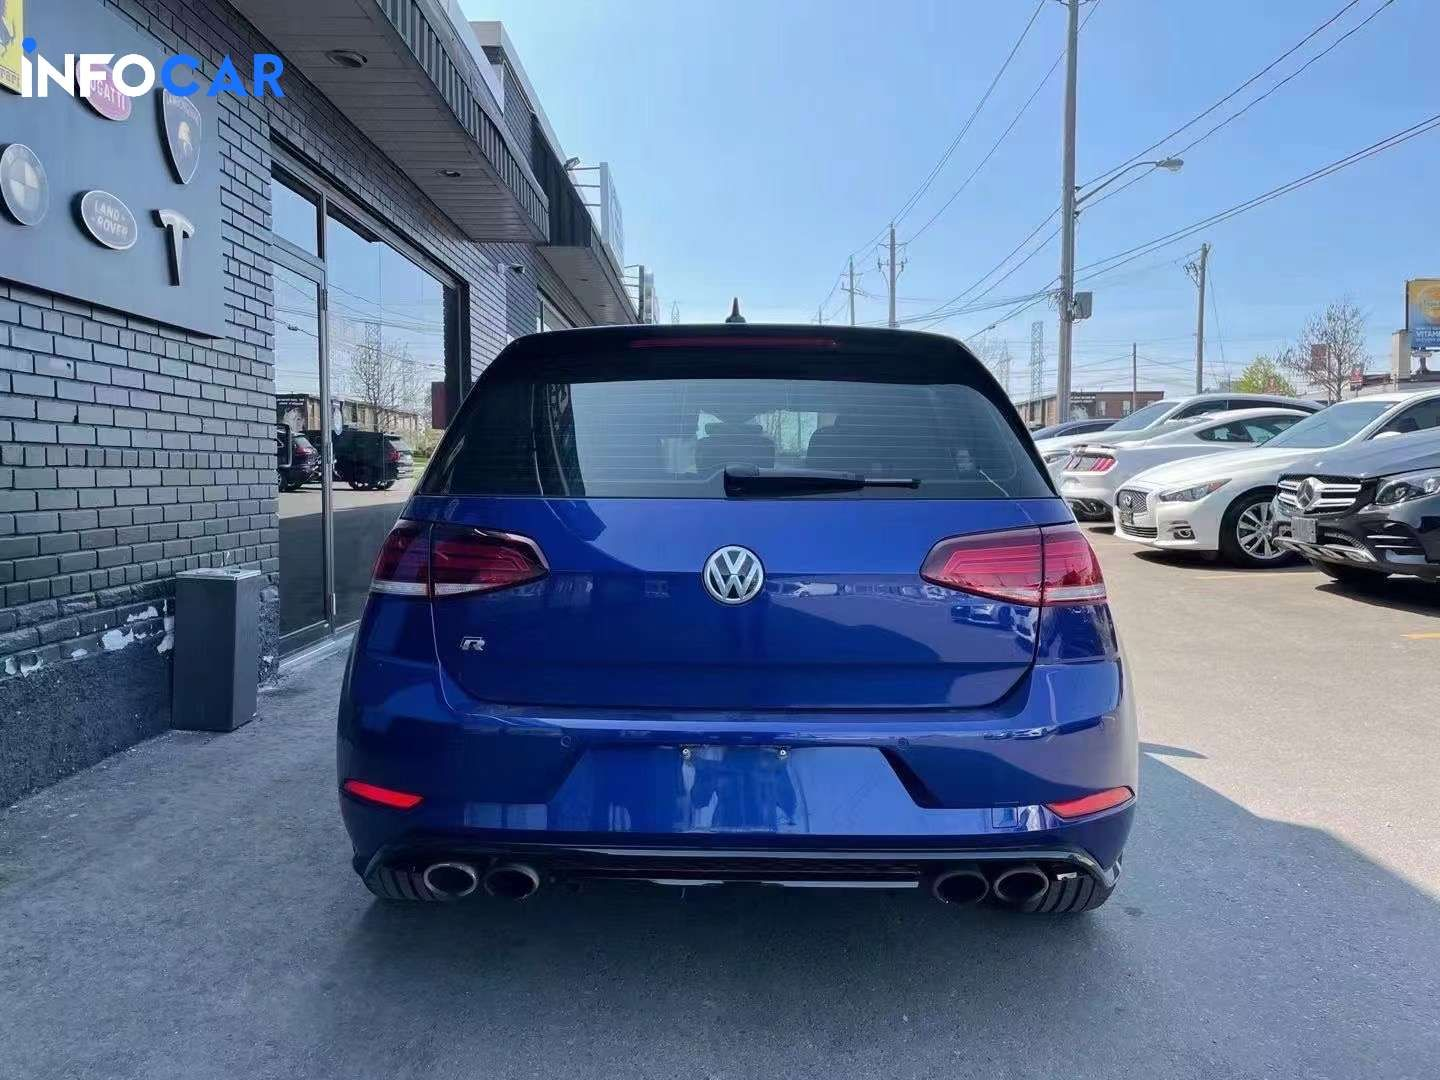 2018 Volkswagen Golf R null - INFOCAR - Toronto's Most Comprehensive New and Used Auto Trading Platform